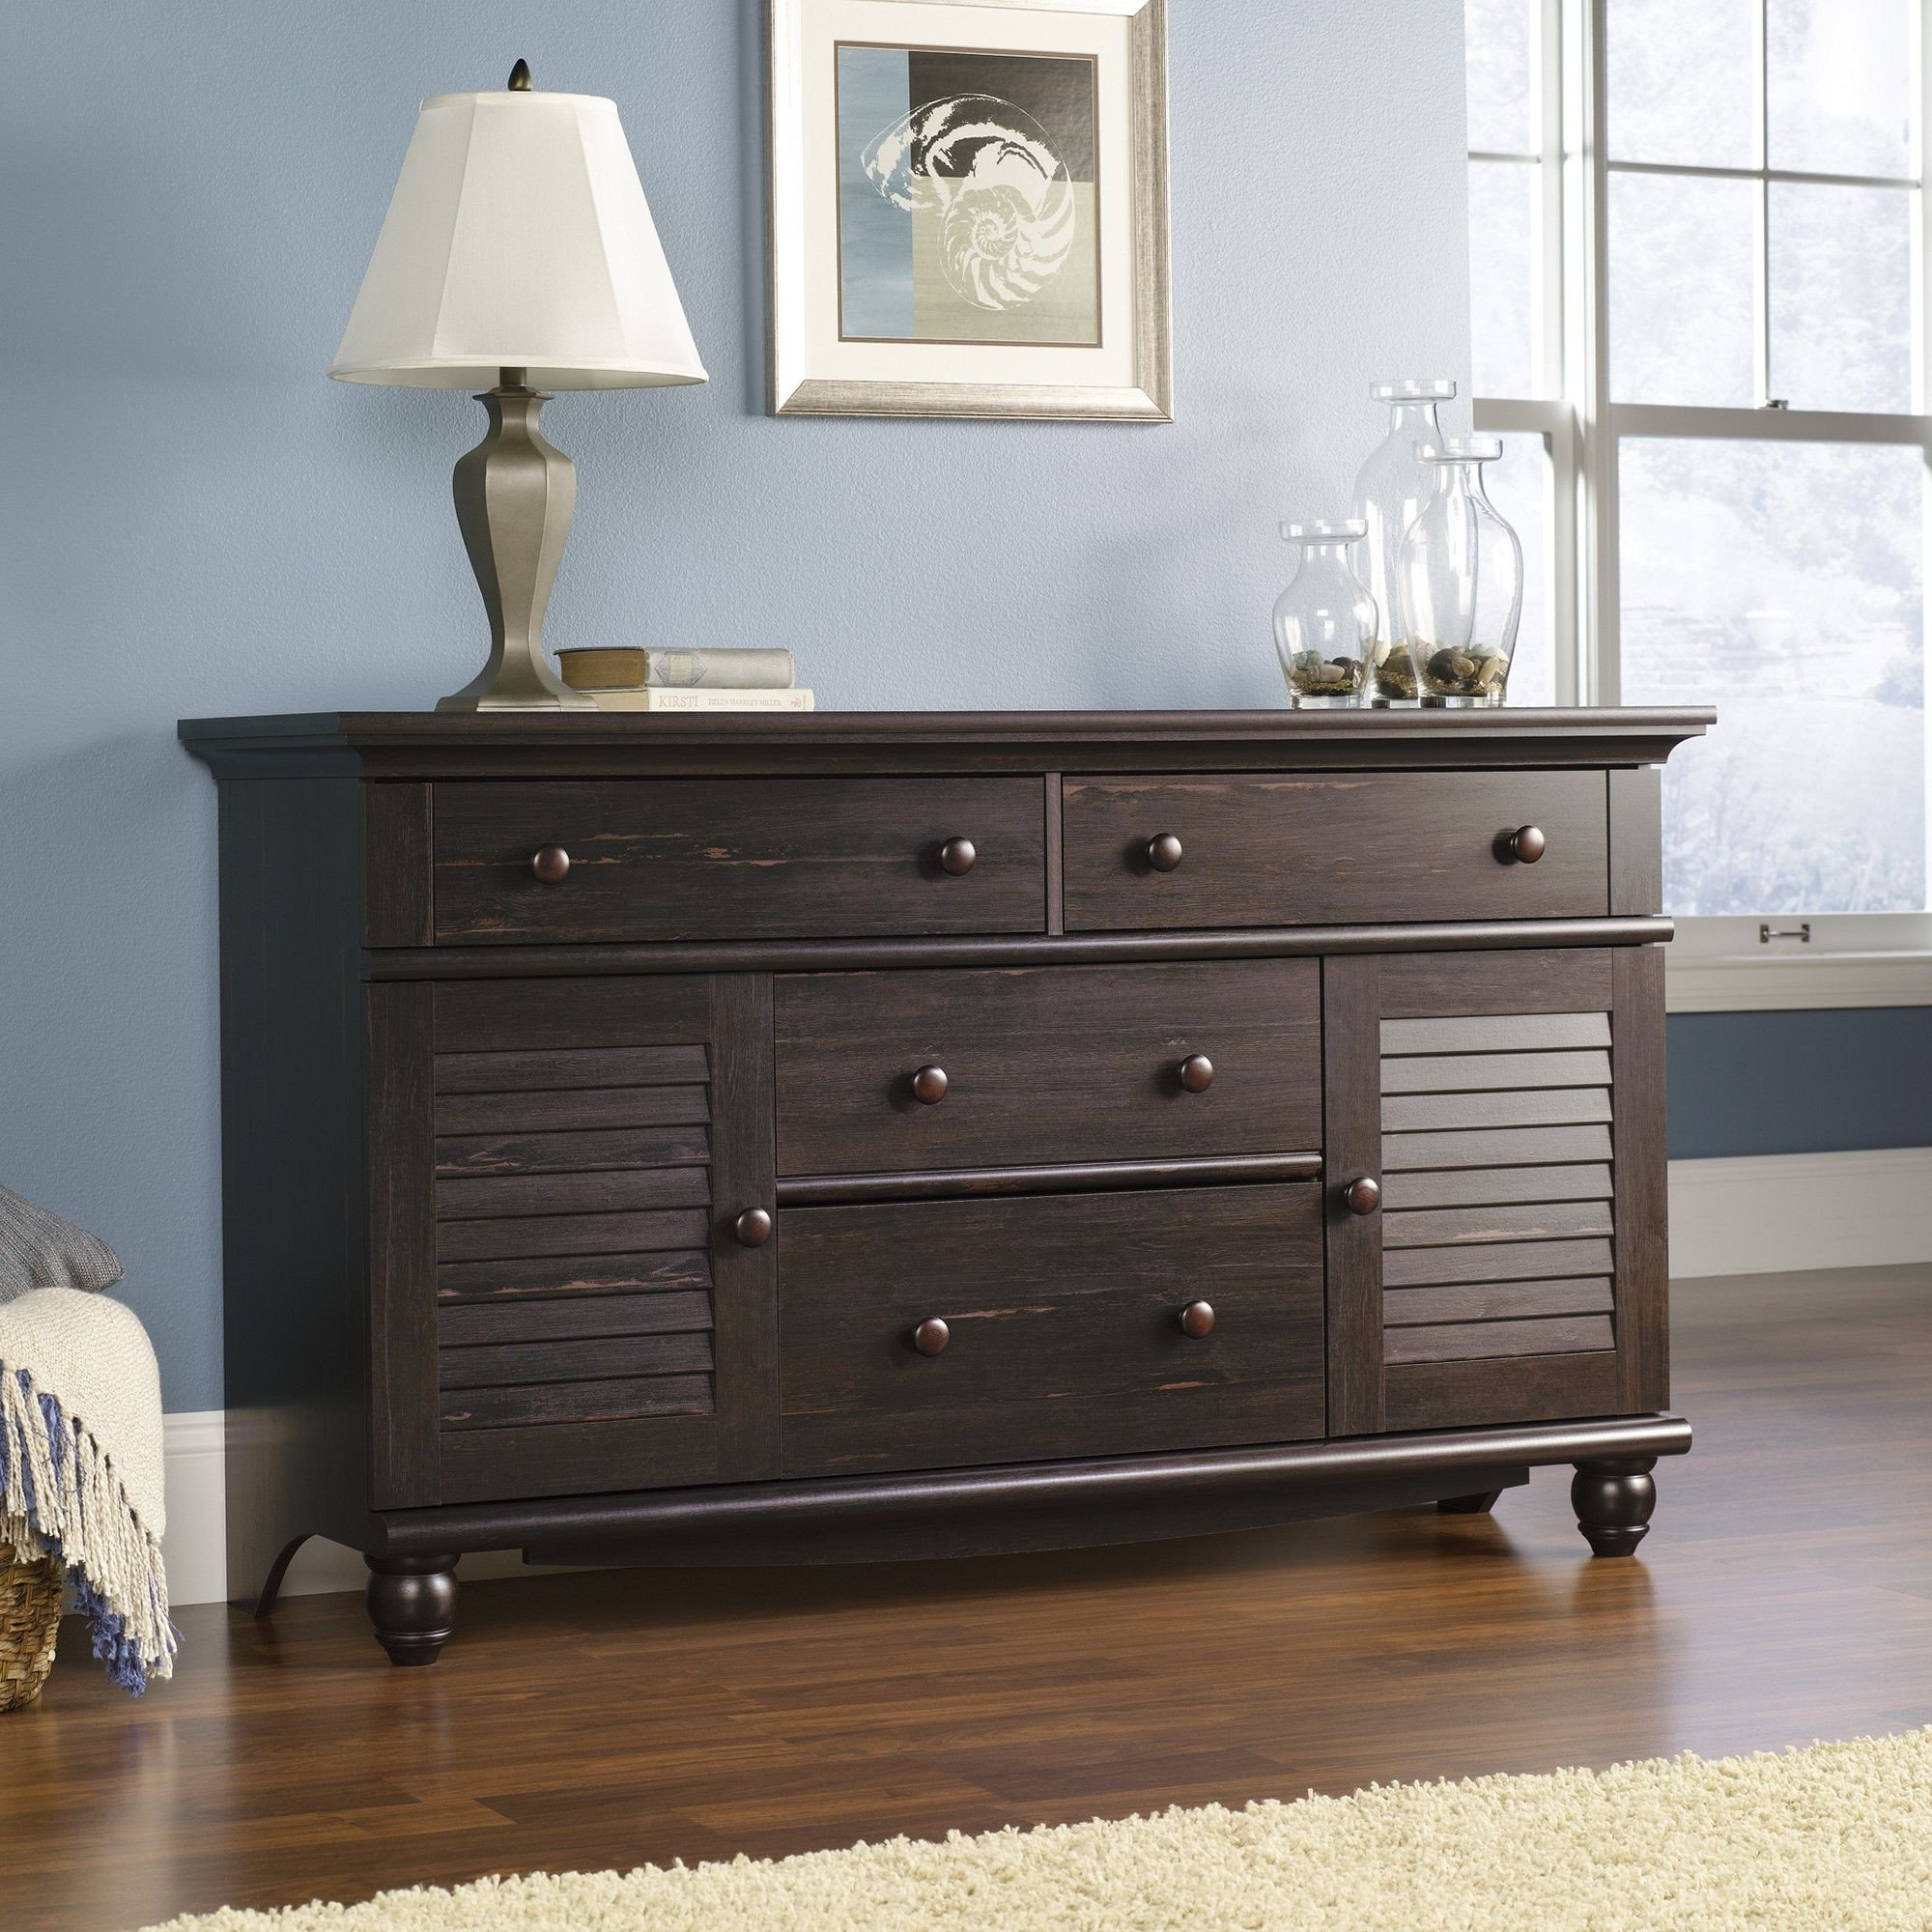 Bedroom Dressers for Sale Fresh Pinellas 4 Drawer Bo Dresser